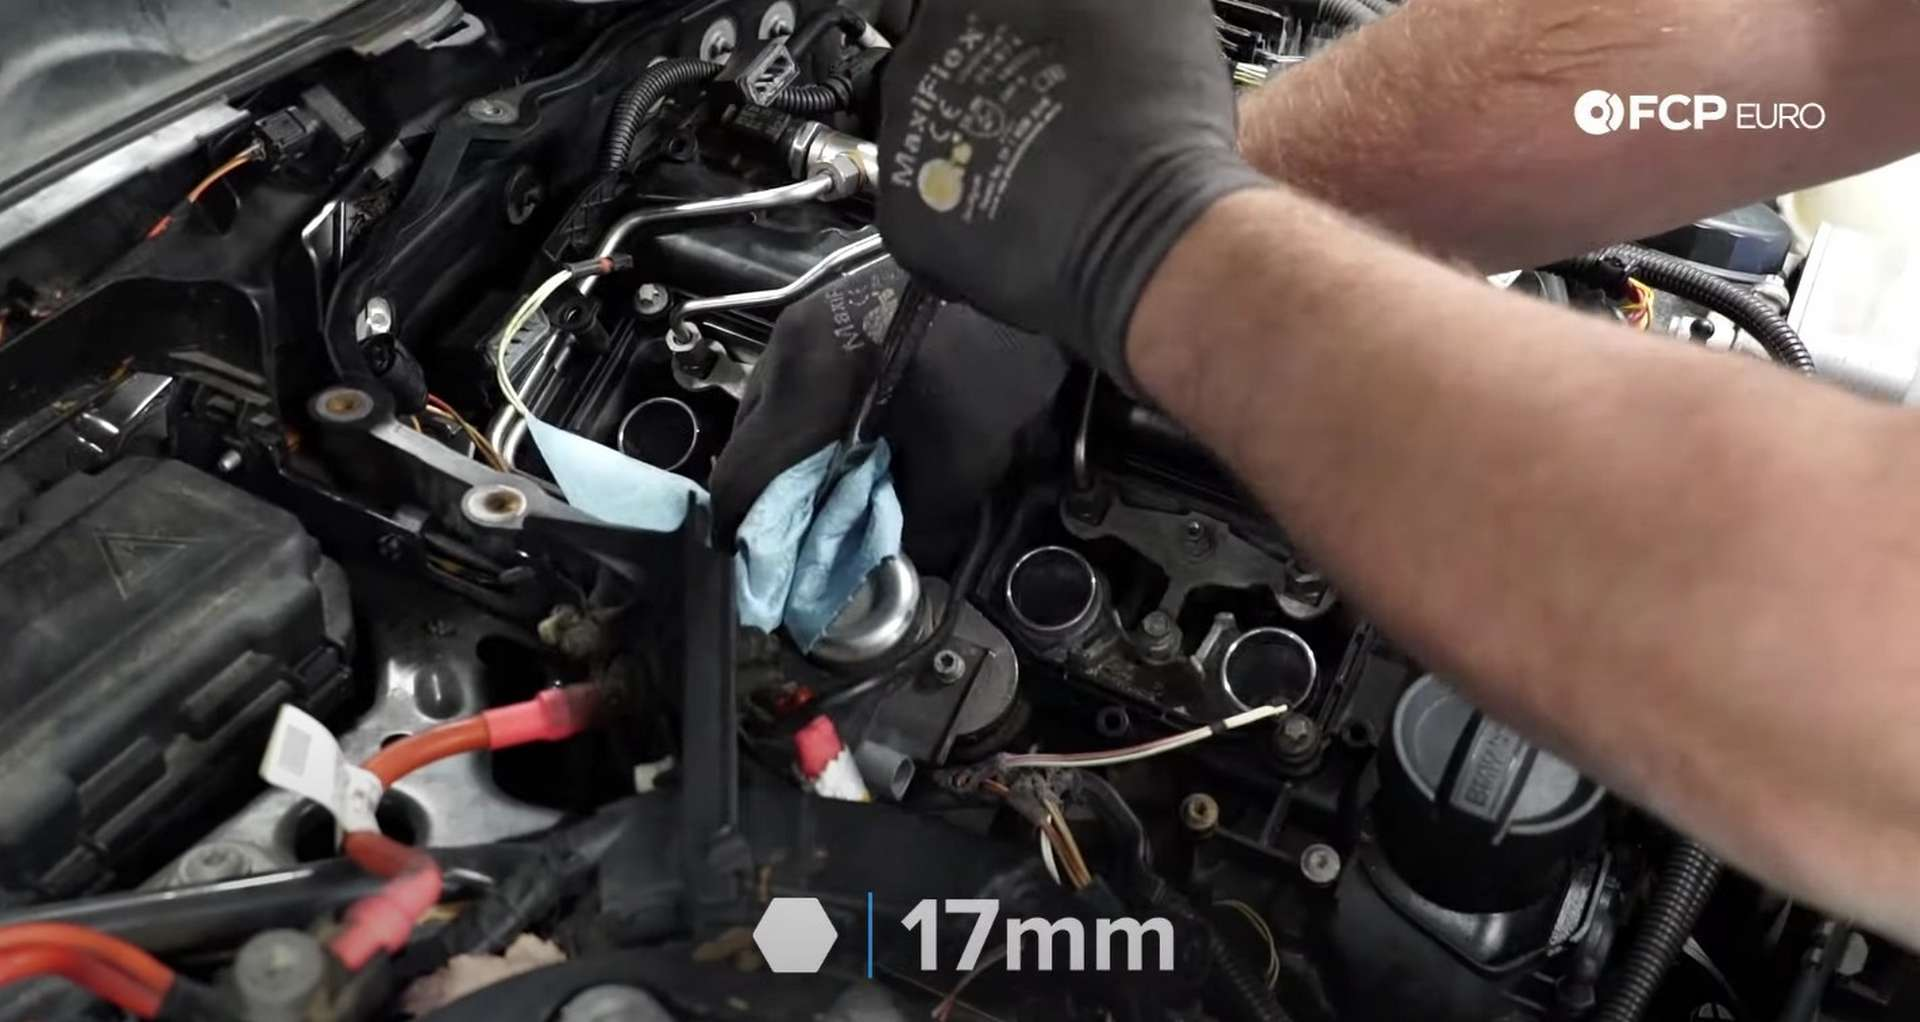 DIY BMW F30 High-Pressure Fuel Pump Replacement disconnecting the high-pressure feed line from the pump